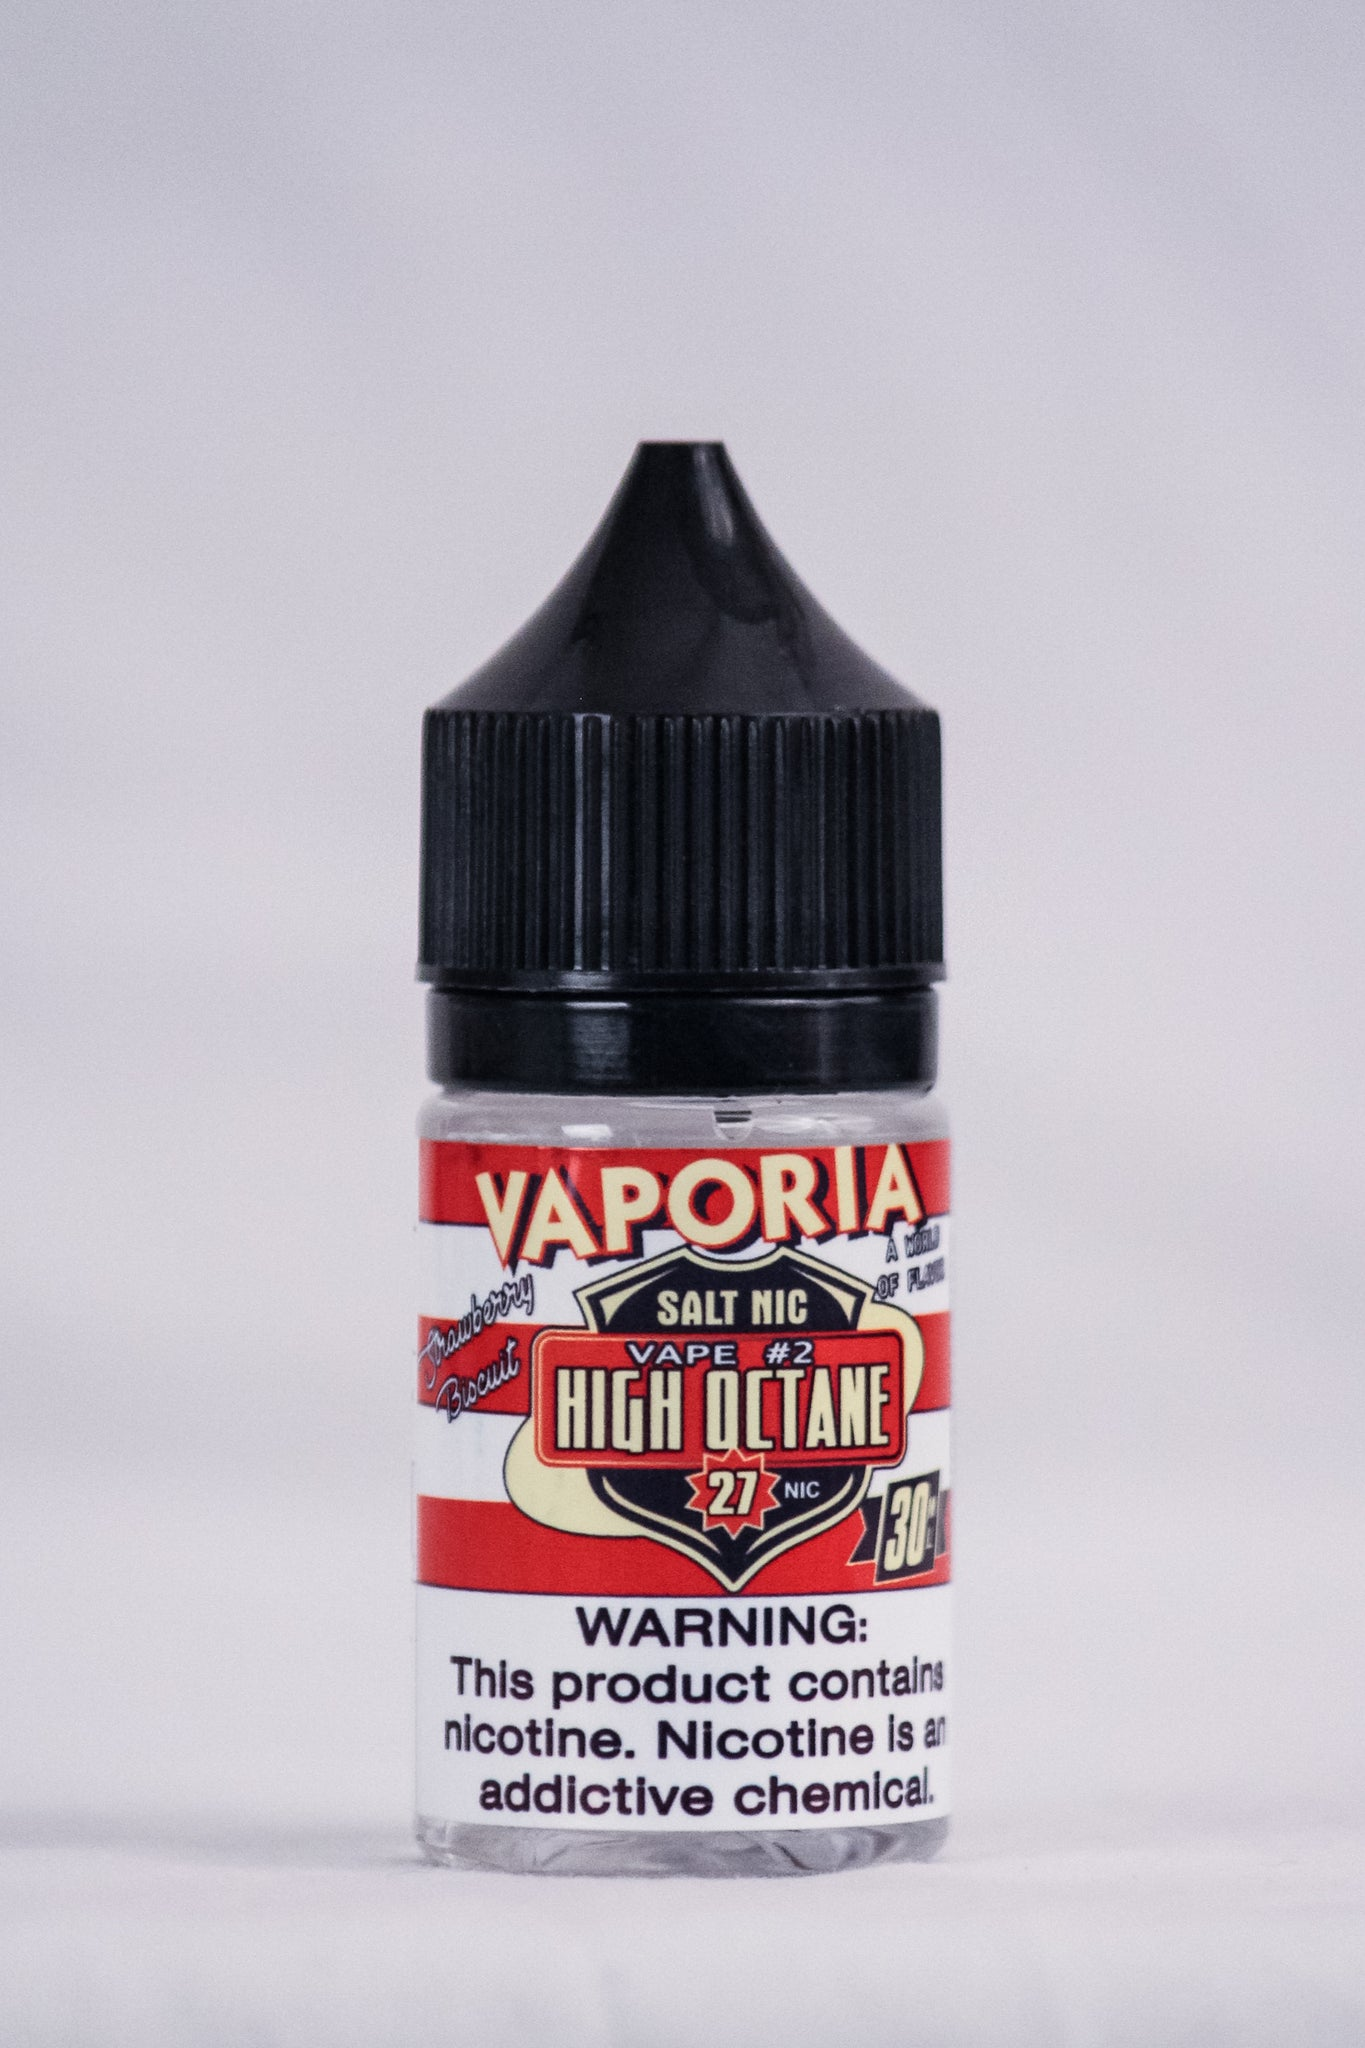 High Octane Vape II